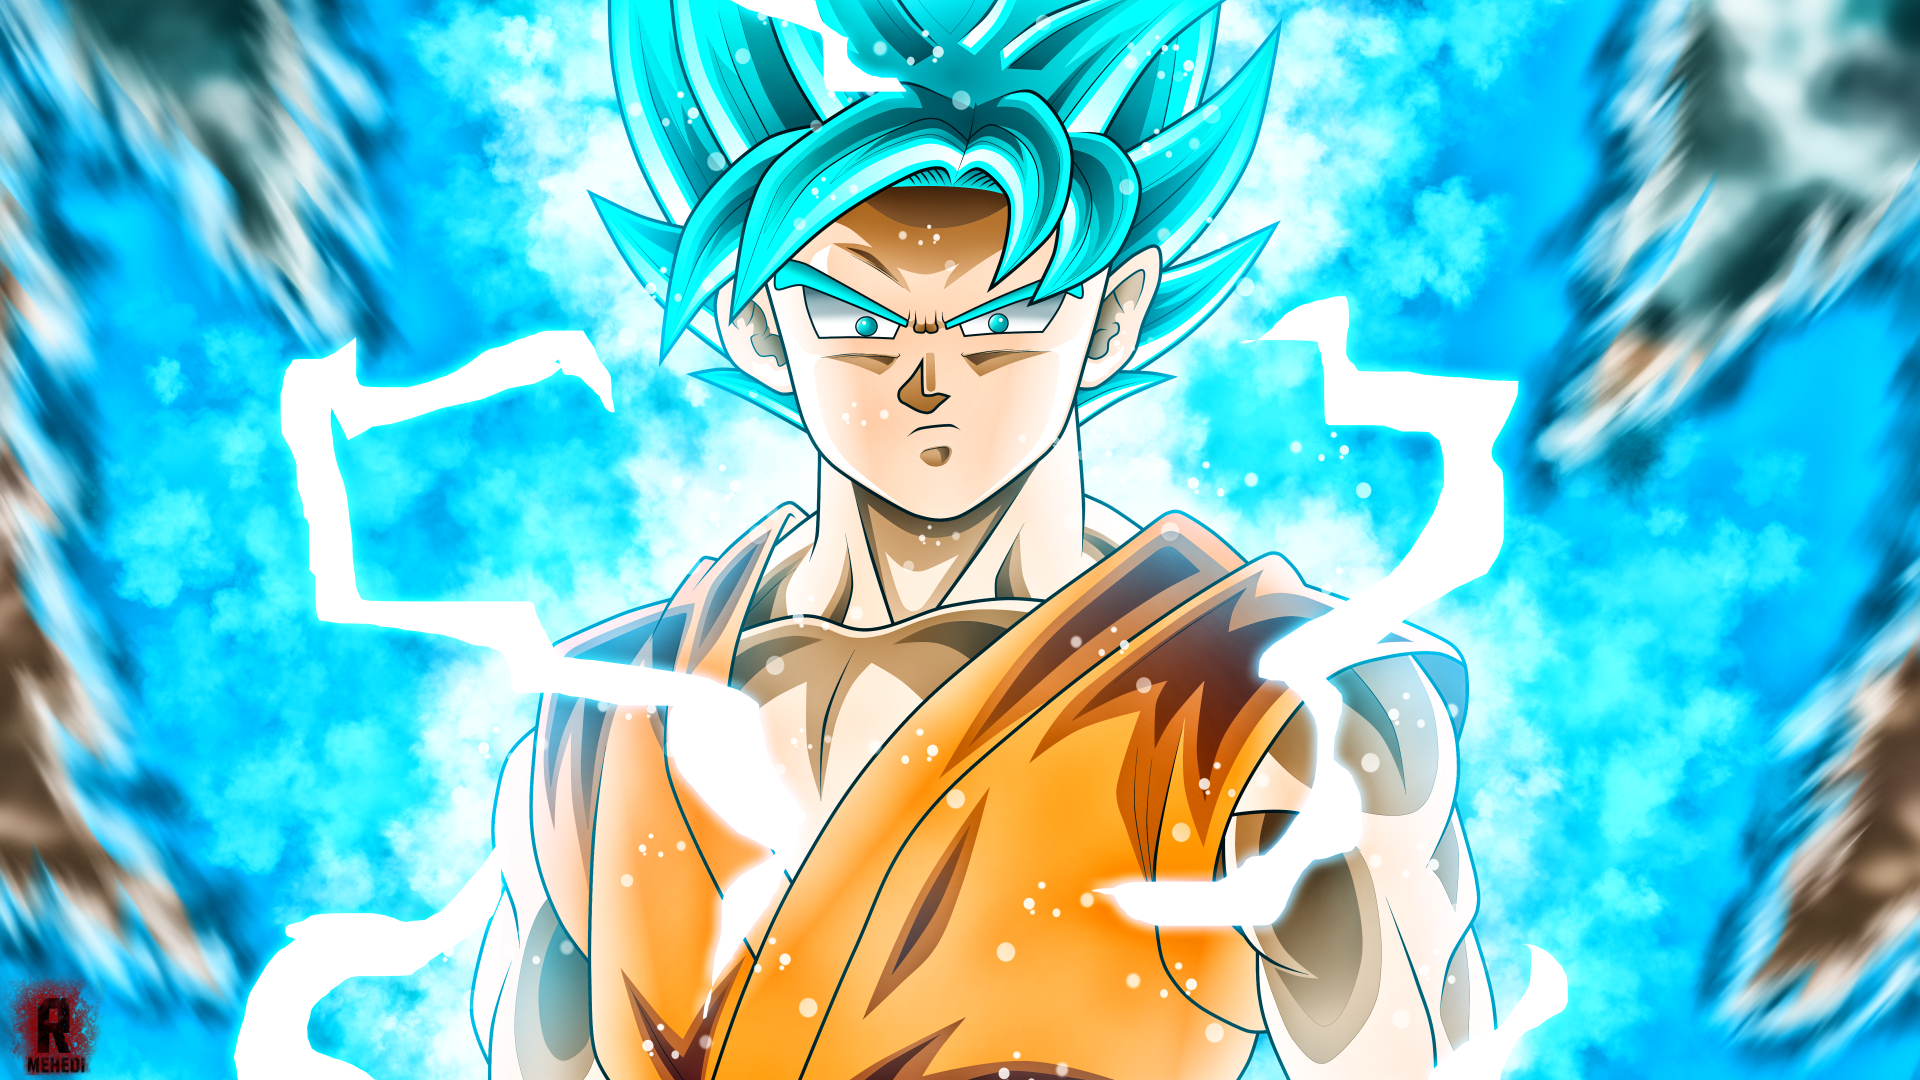 Free Download Goku Super Saiyan Blue Wallpaper Hd 1920x1080 For